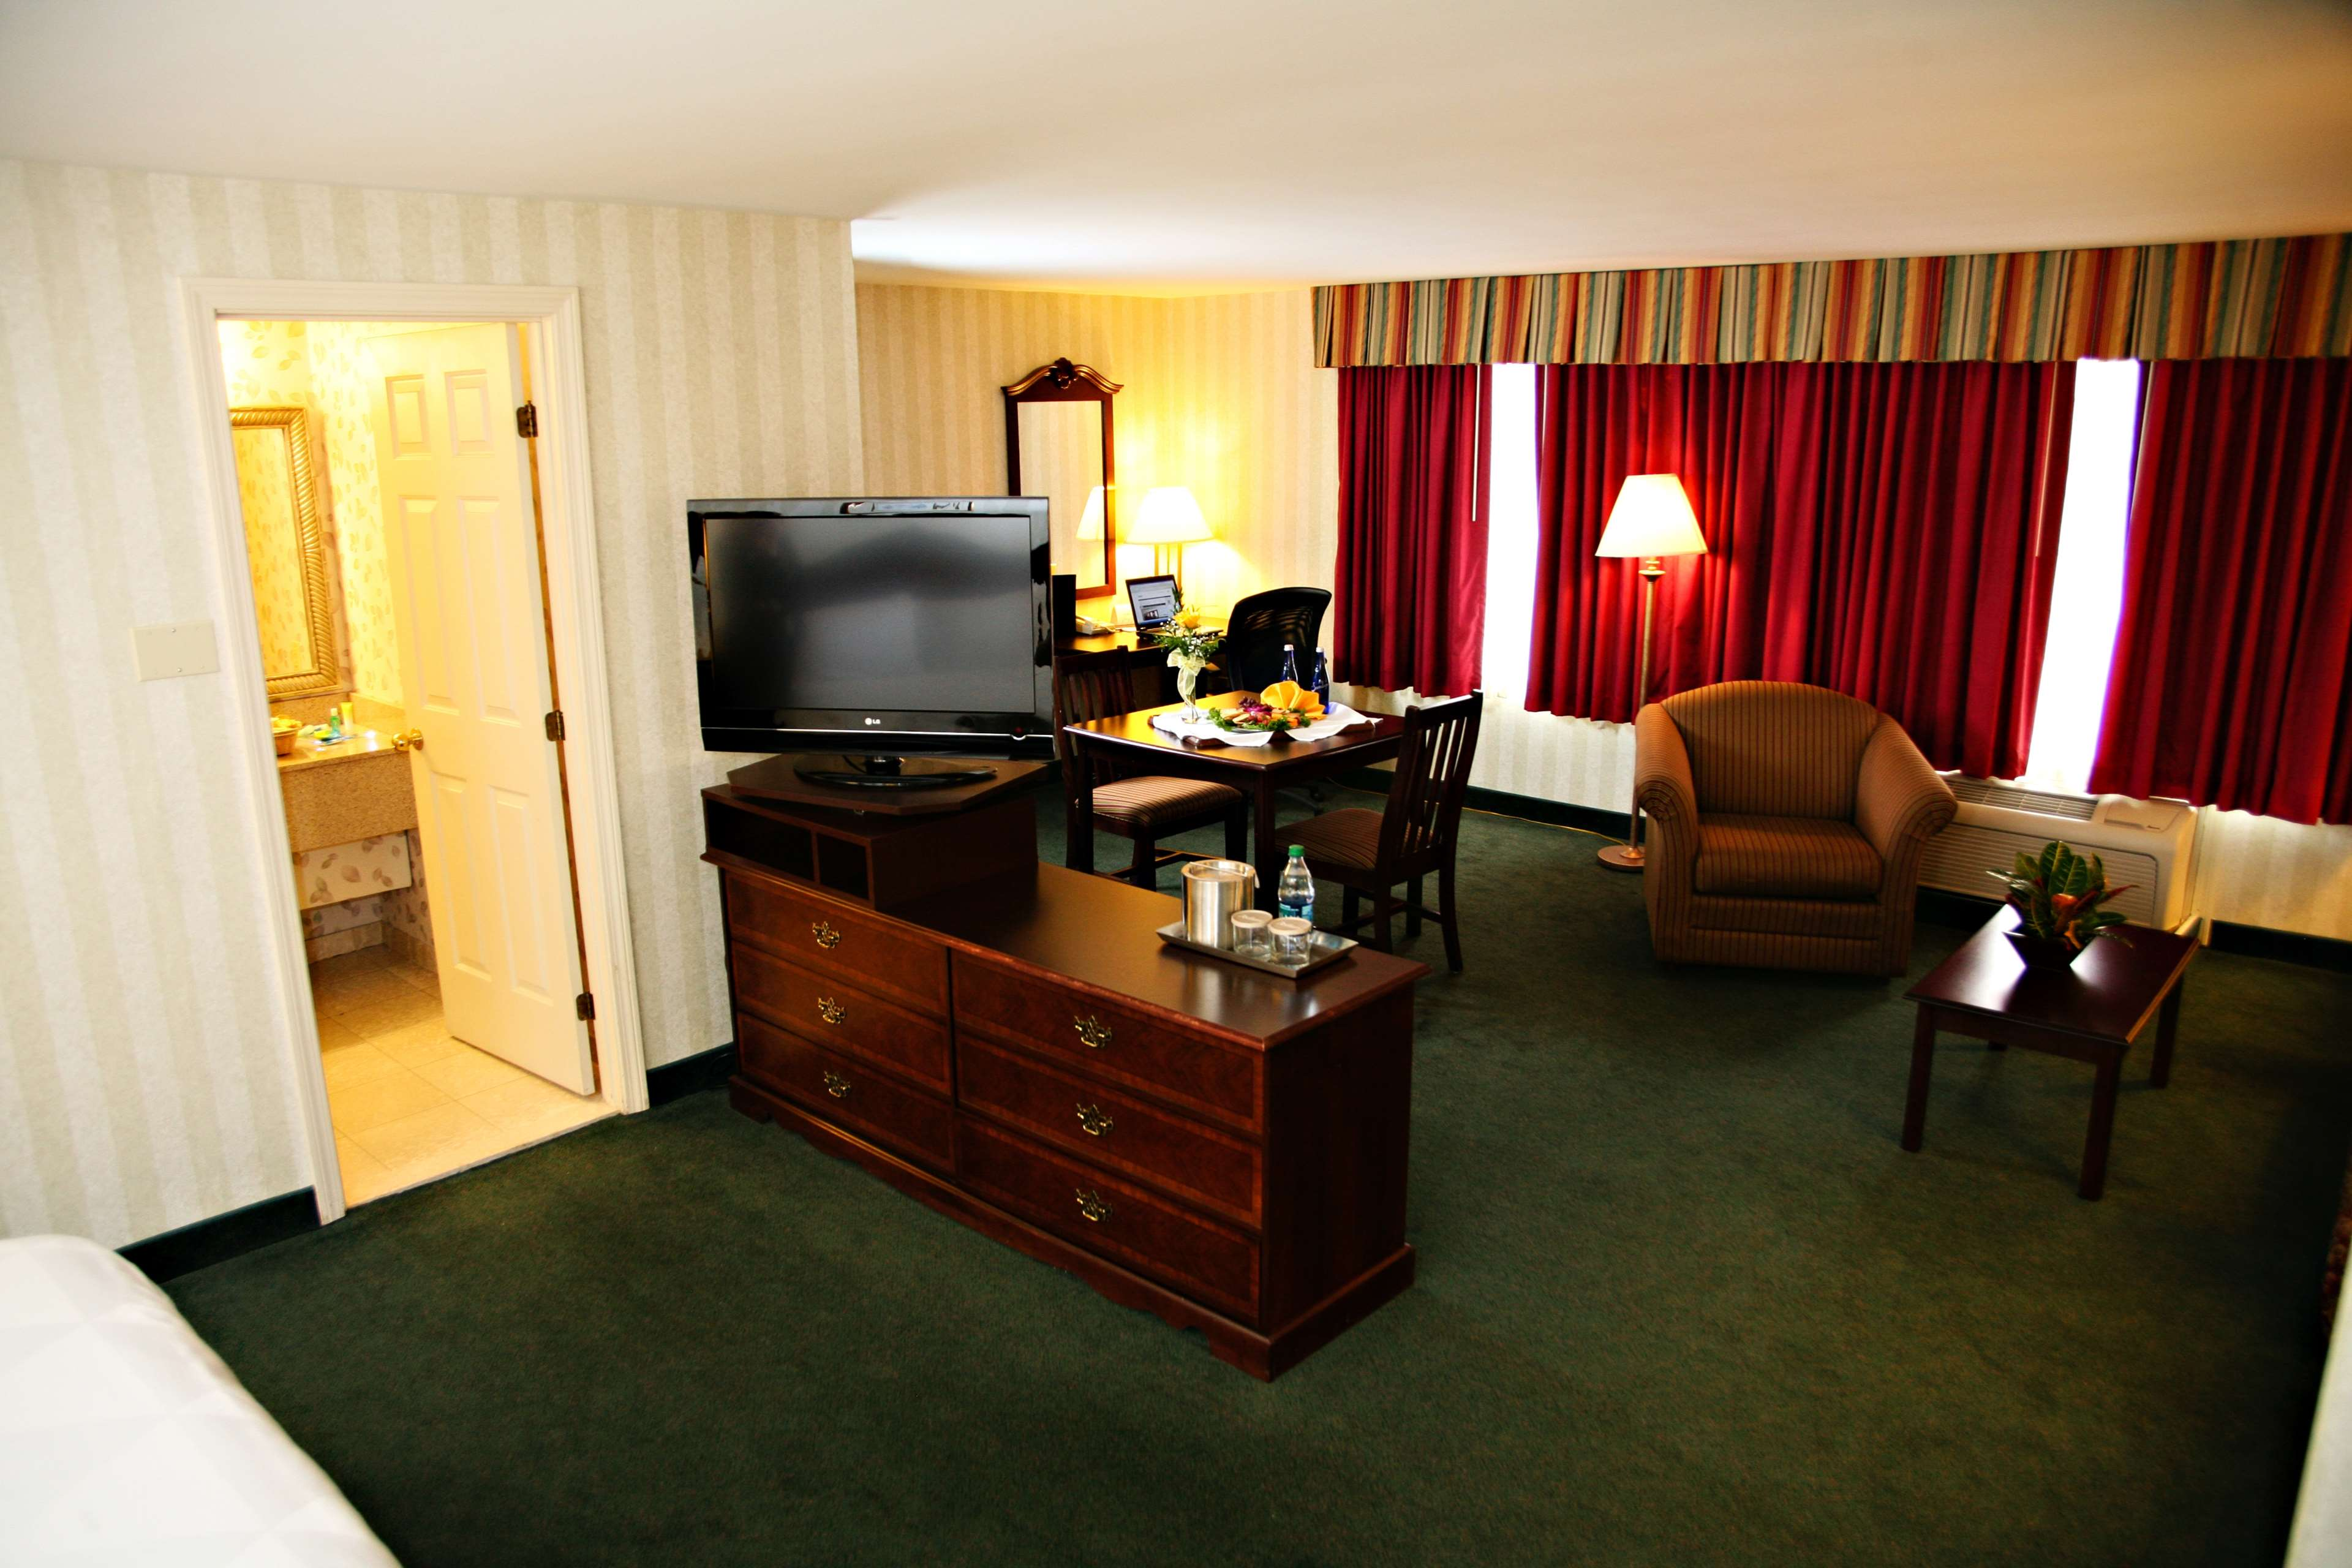 Radisson Hotel & Suites Chelmsford-Lowell - Closed in Chelmsford, MA, photo #13